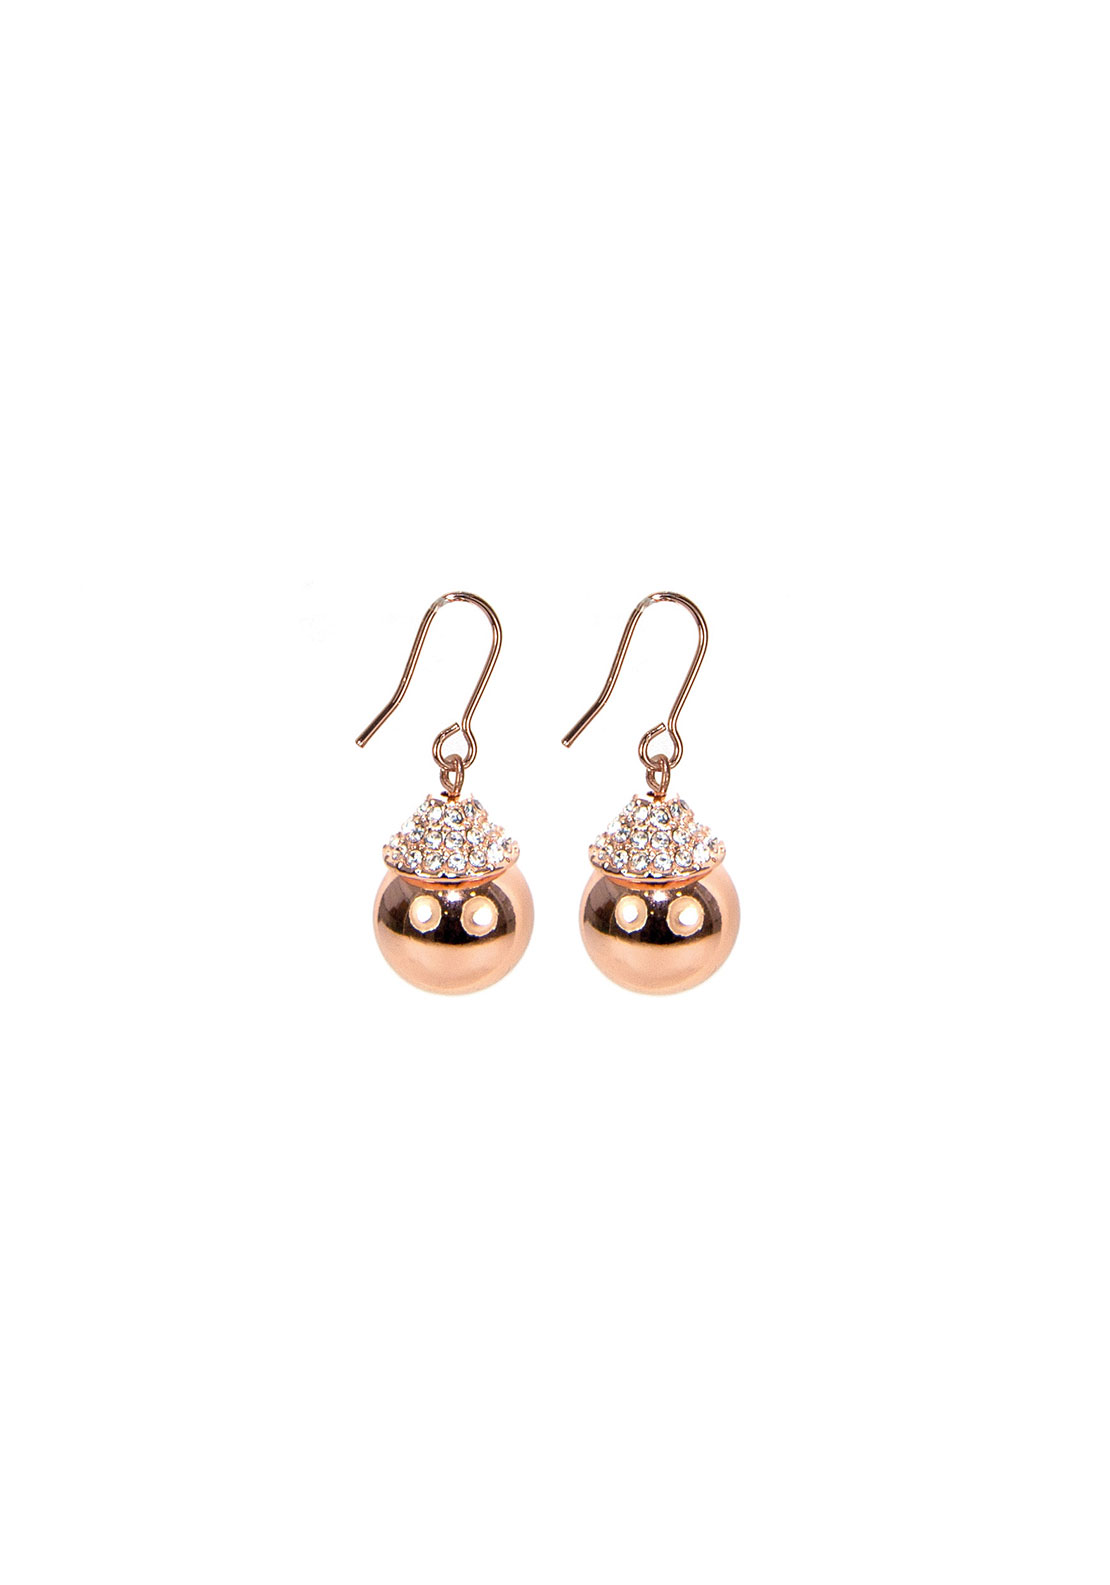 Absolute Jewellery Stud Drop Earrings